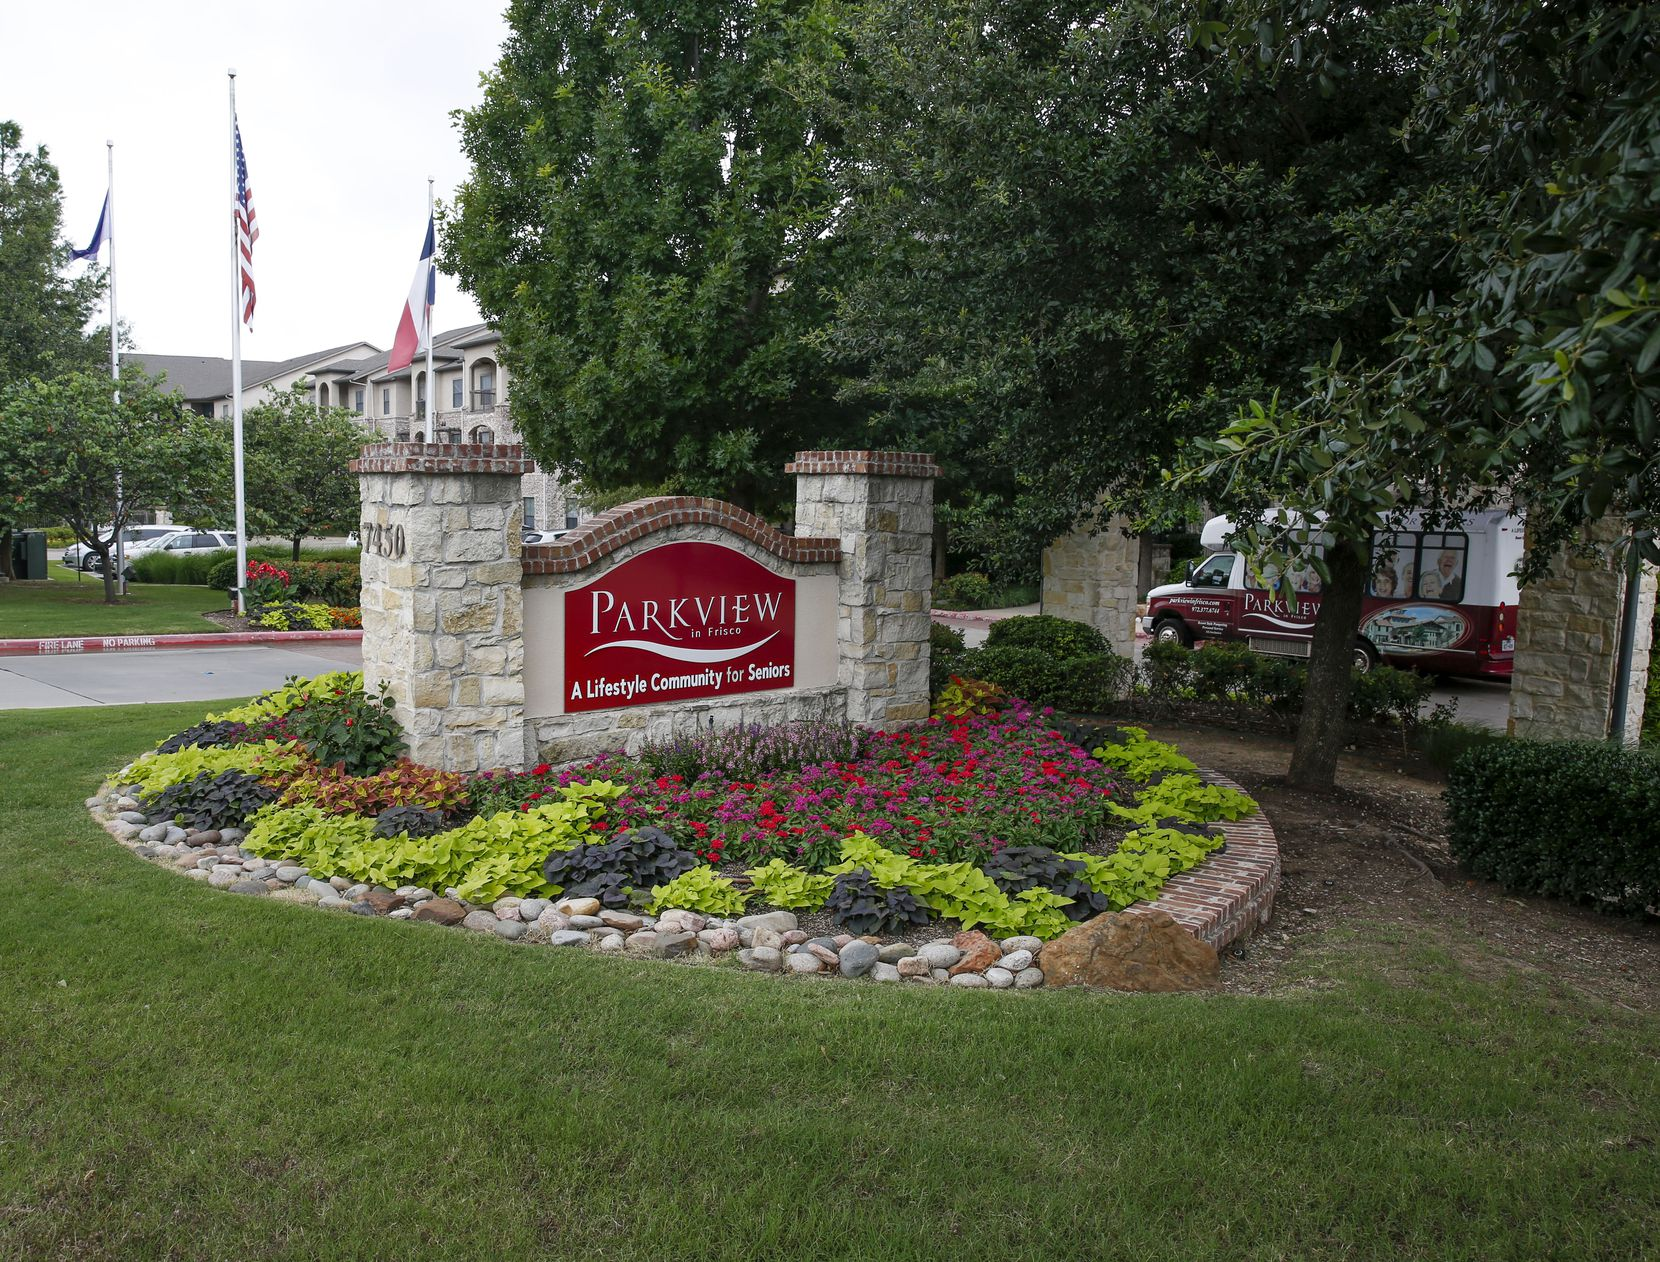 Parkview in Frisco, a rental retirement community, is one of the communities where police say Billy Chemirmir targeted elderly women.